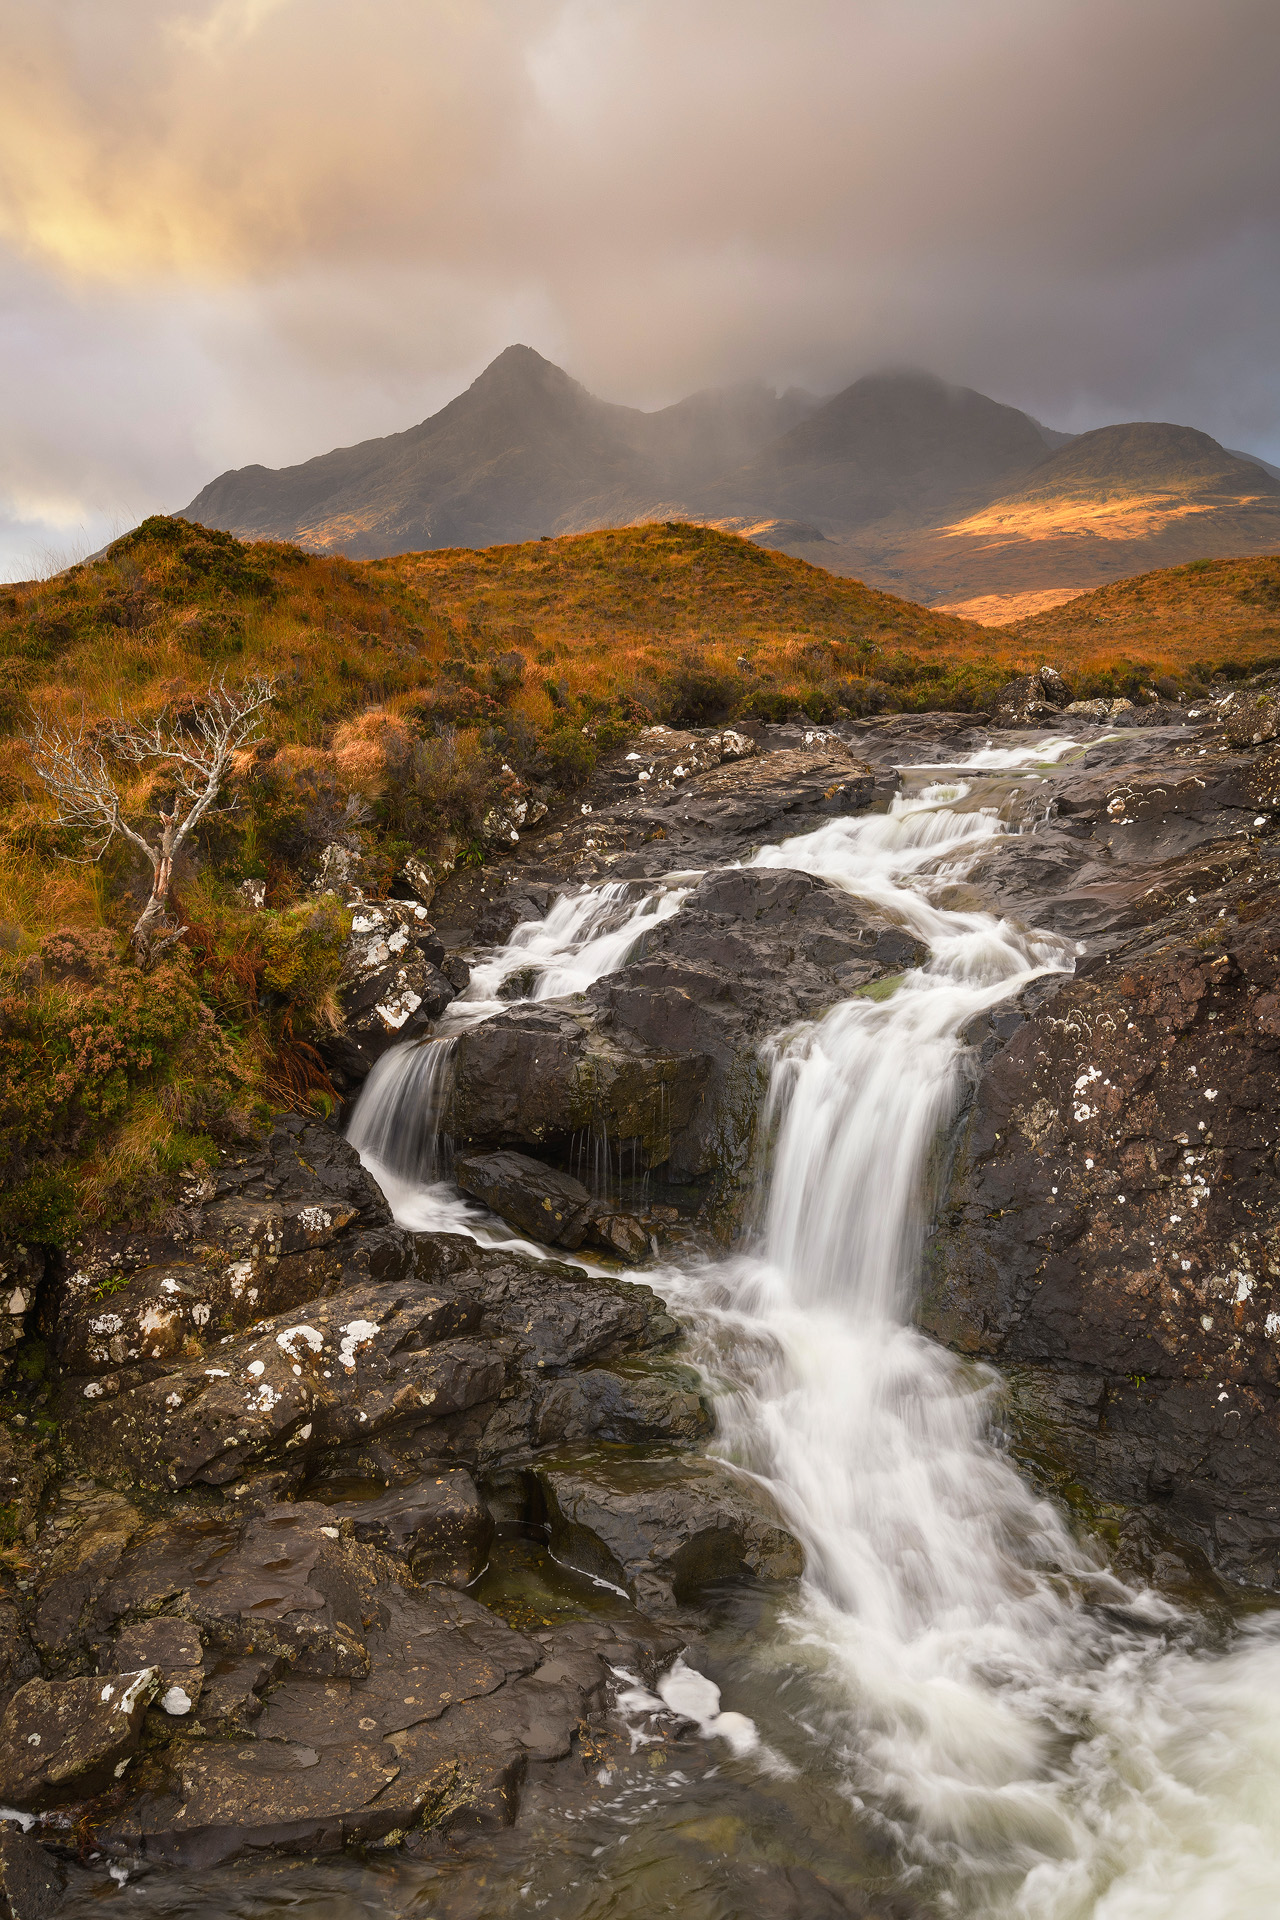 Sunrise Showers over the Cuillins